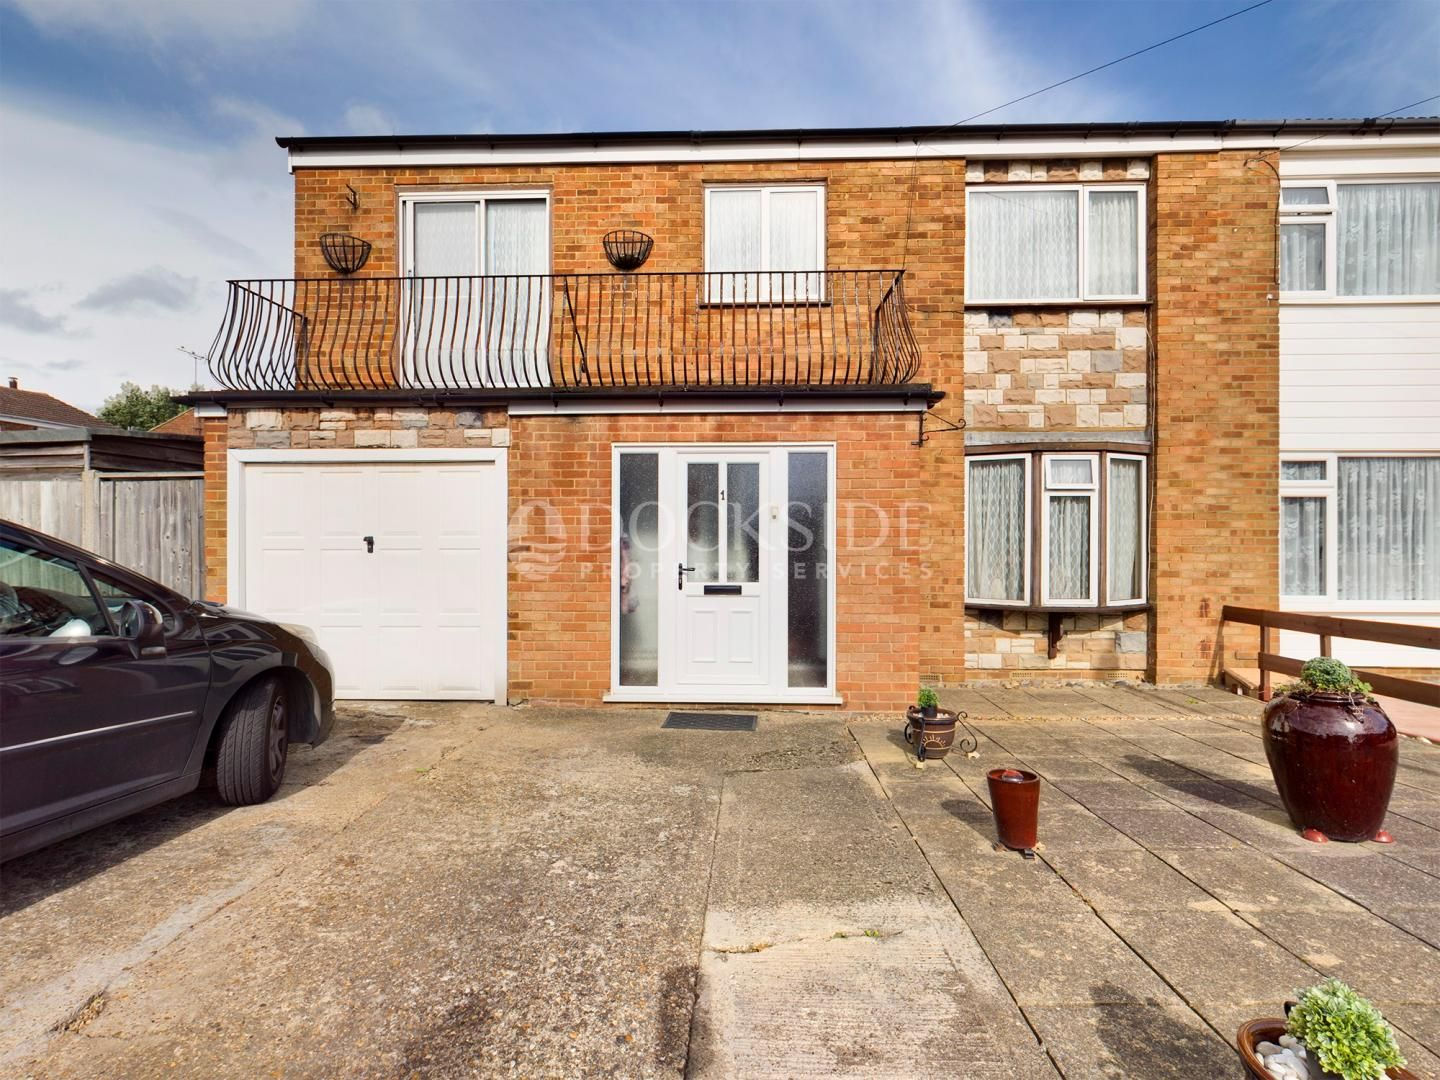 4 bed house for sale in Levett Close - Property Image 1